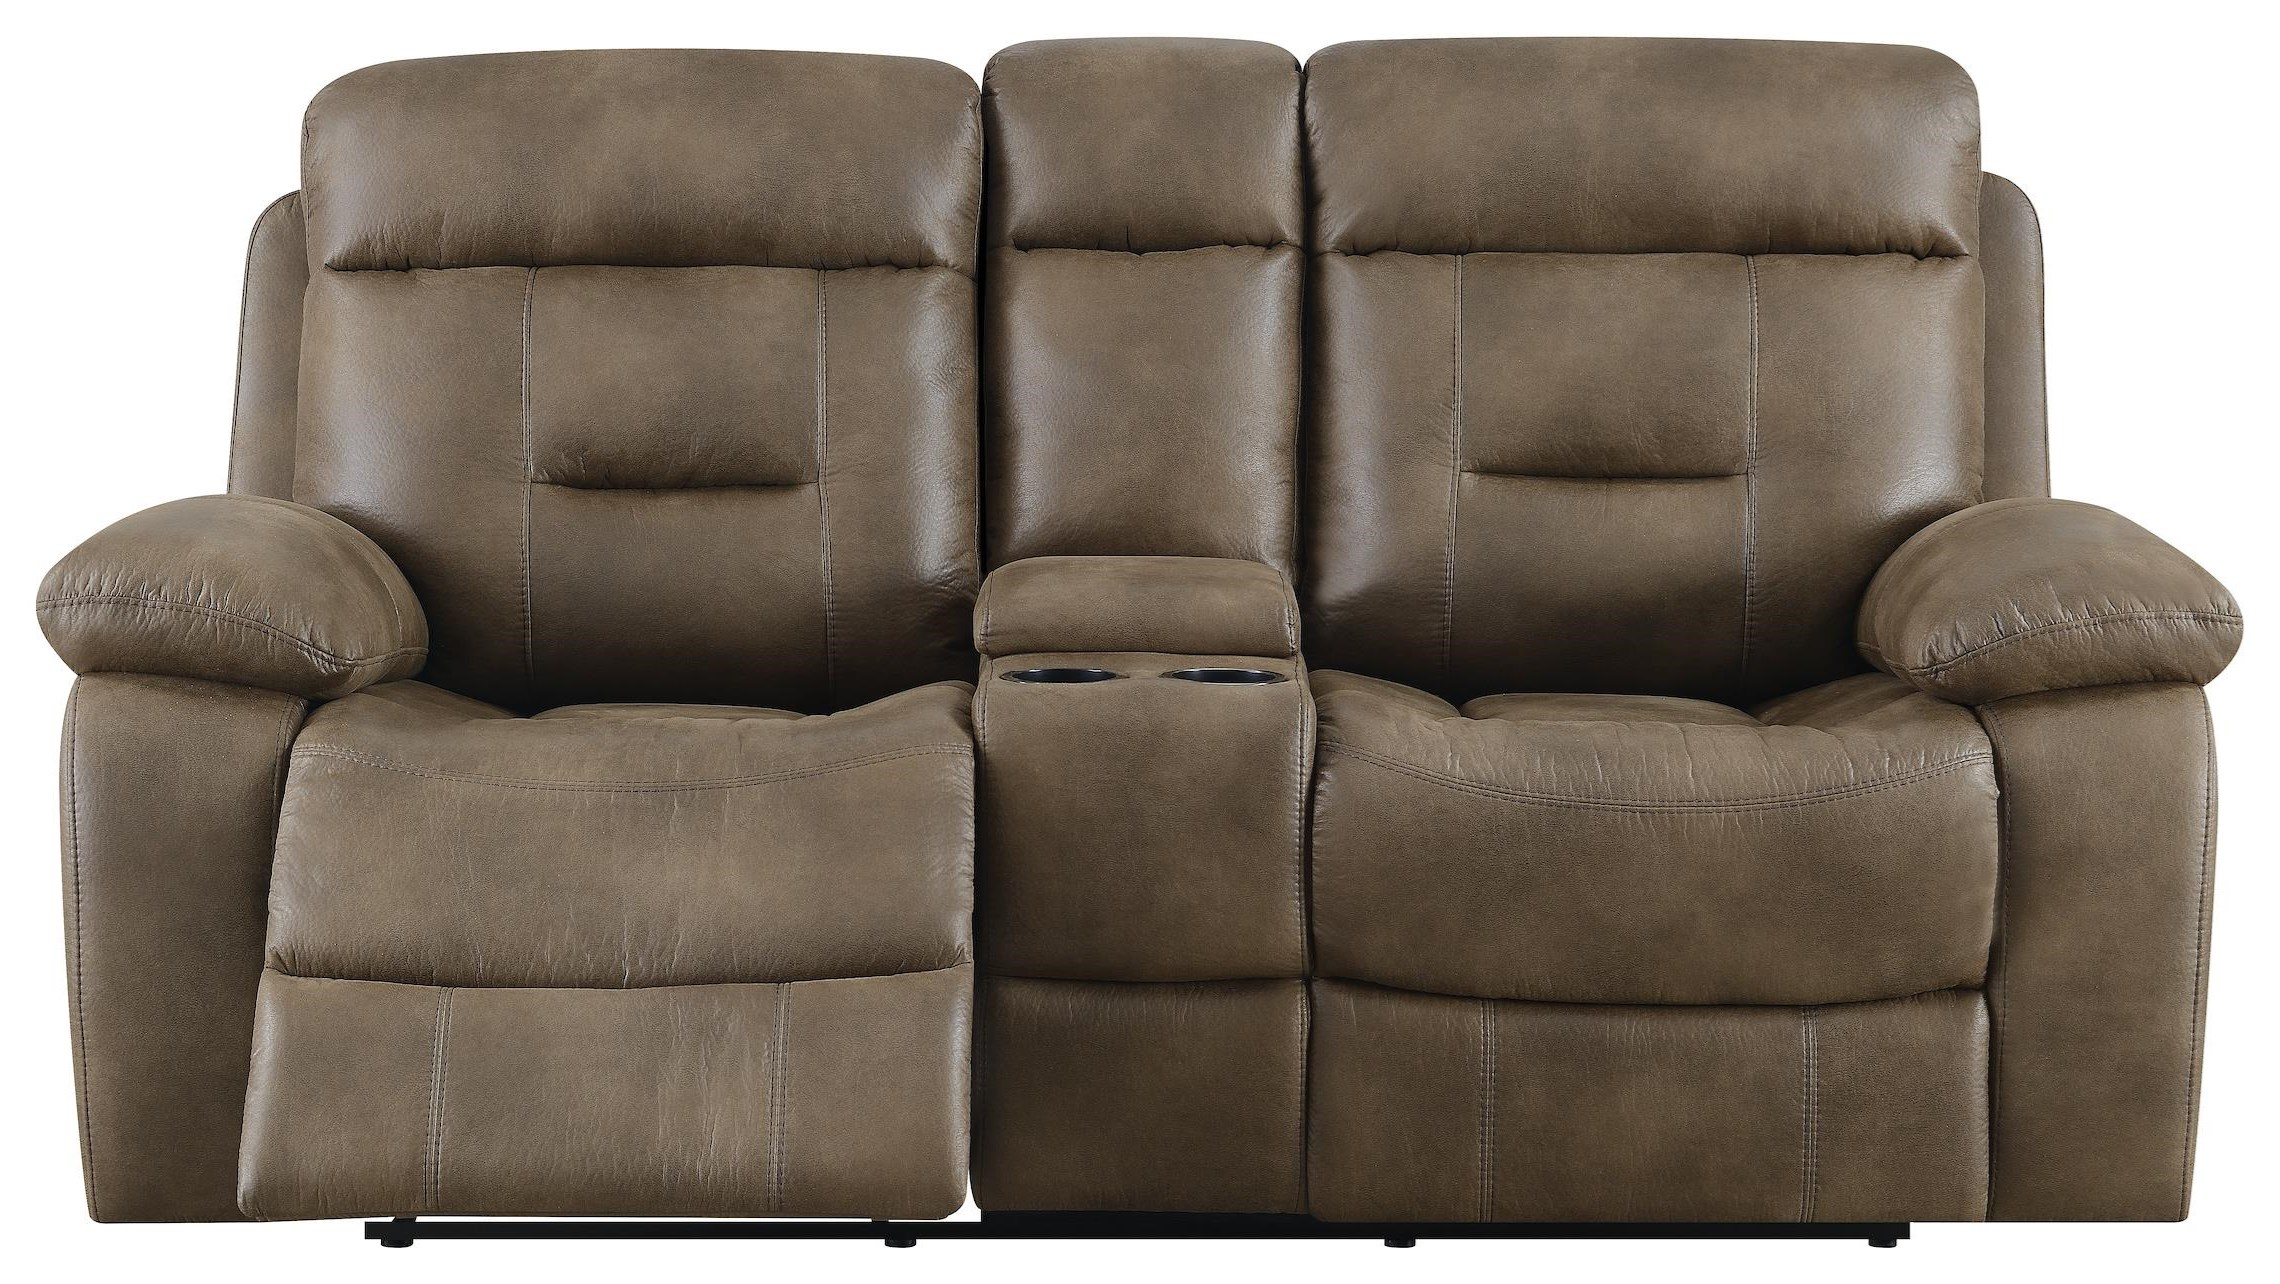 Cano Reclining Loveseat by Klaussner International at Beck's Furniture